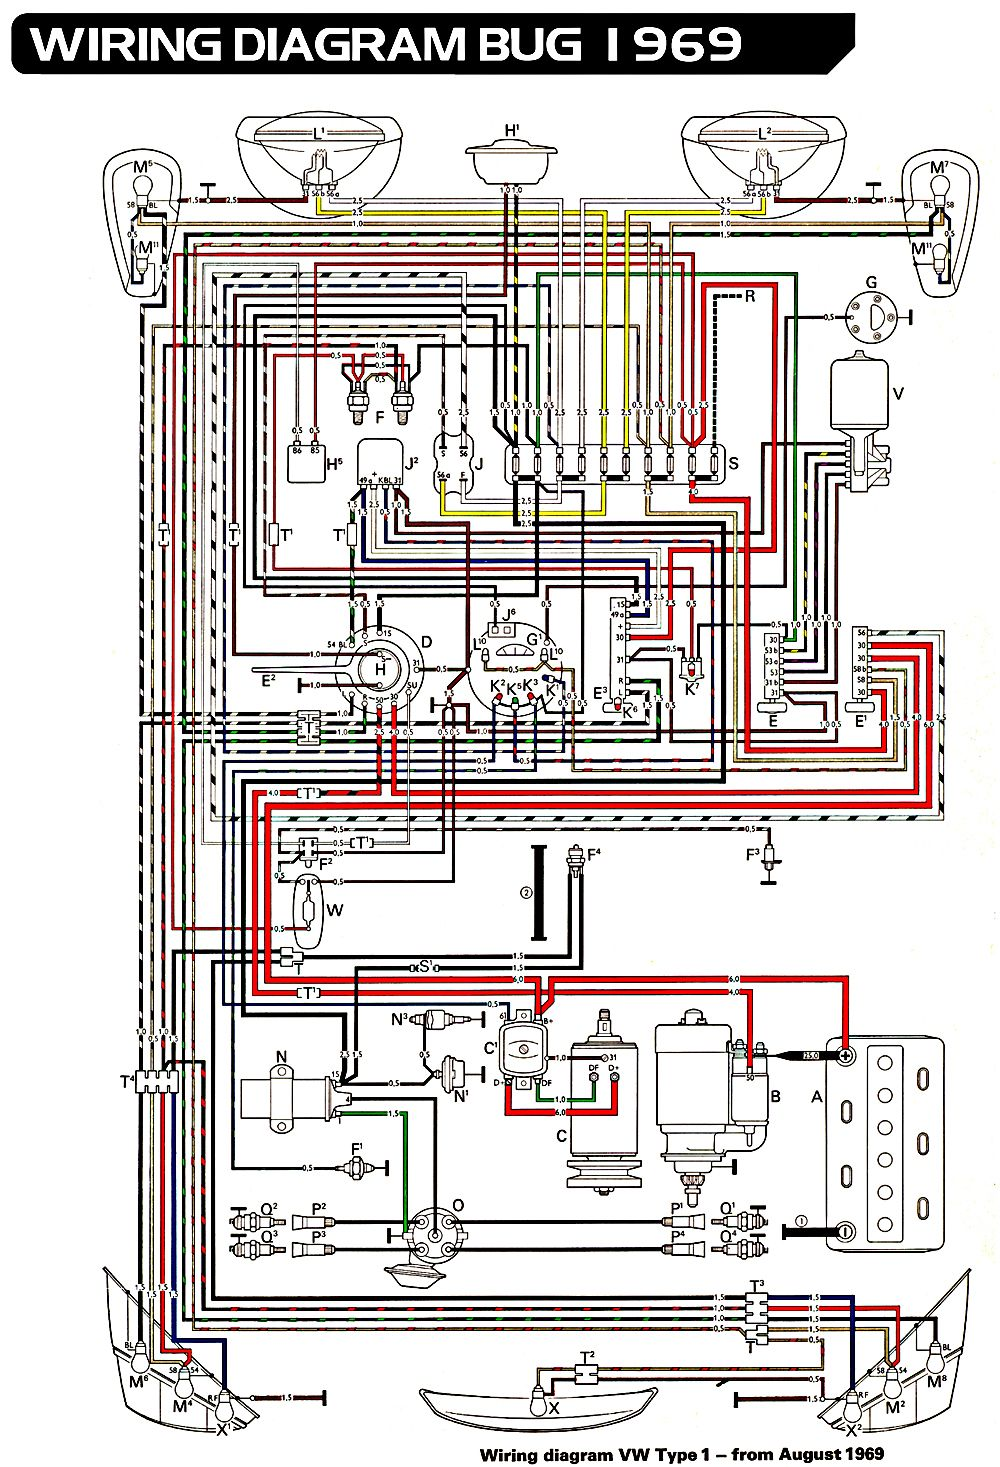 6d75c15875479254f26a32a8499d9044 vw type 1 wiring diagram 1961 vw type 1 wiring diagram \u2022 wiring vw type 3 wiring harness at alyssarenee.co